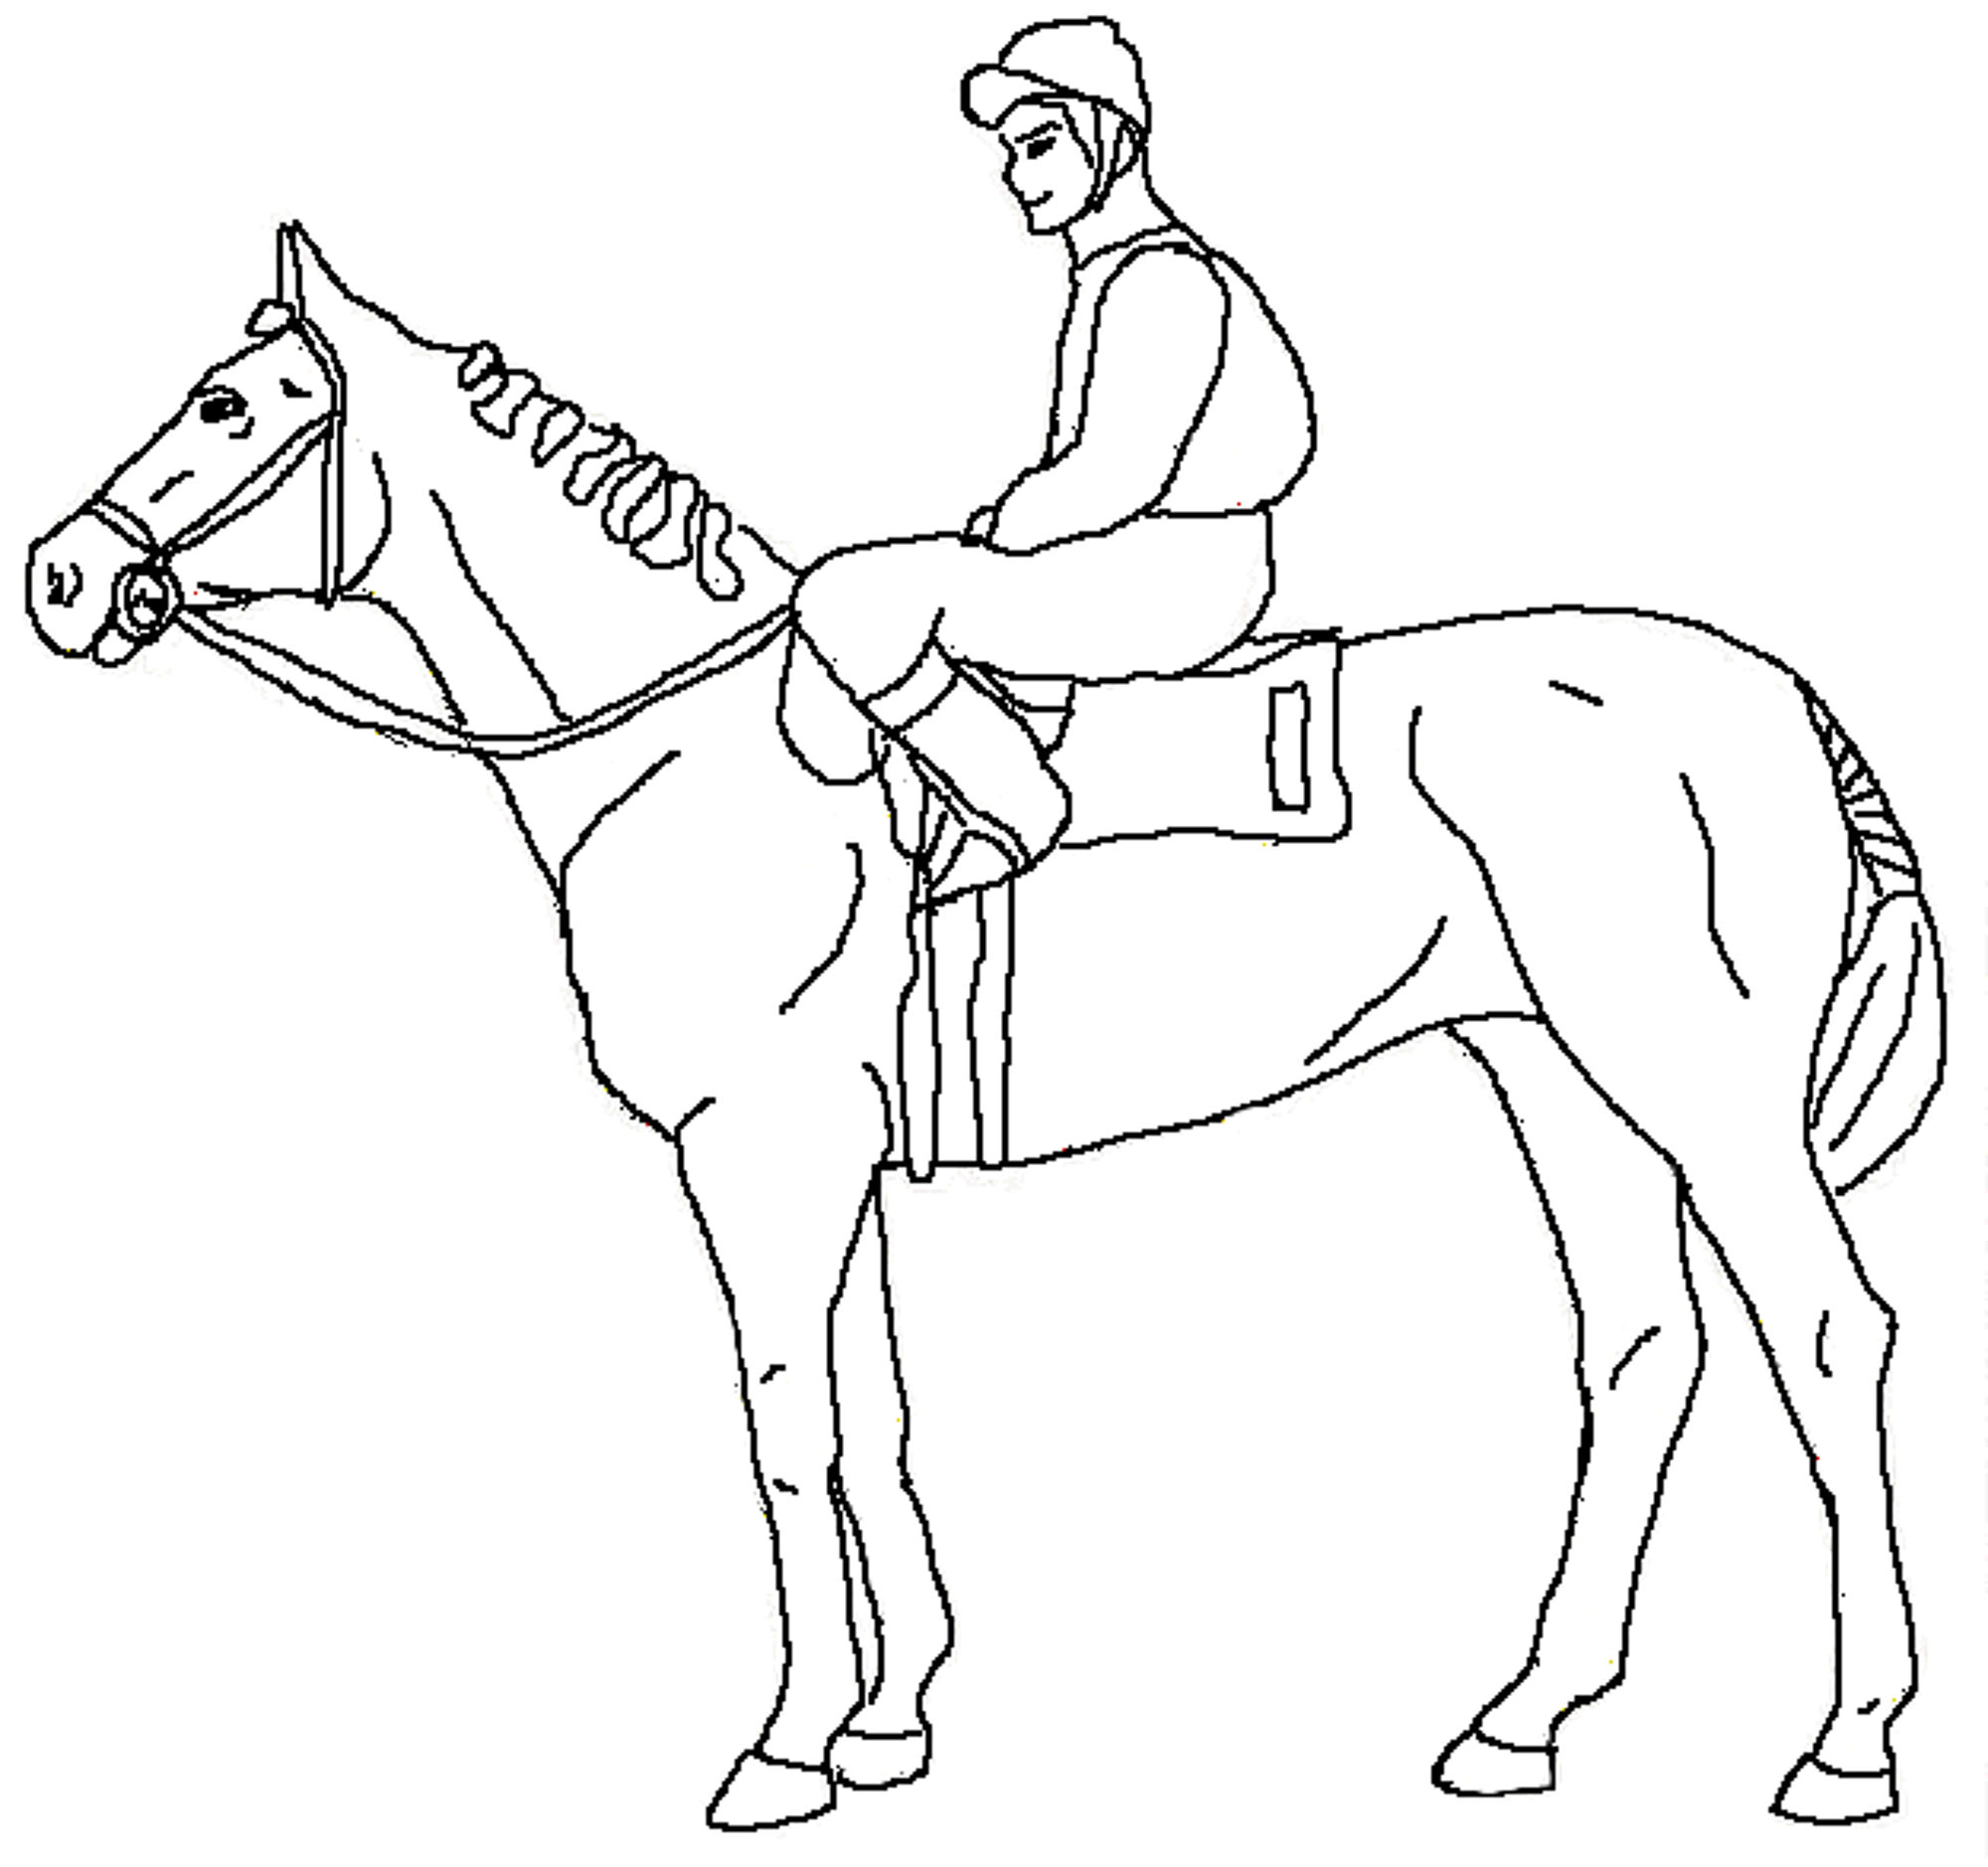 2000x1878 Sturdy Race Horse Coloring Pages To Print Racing Color